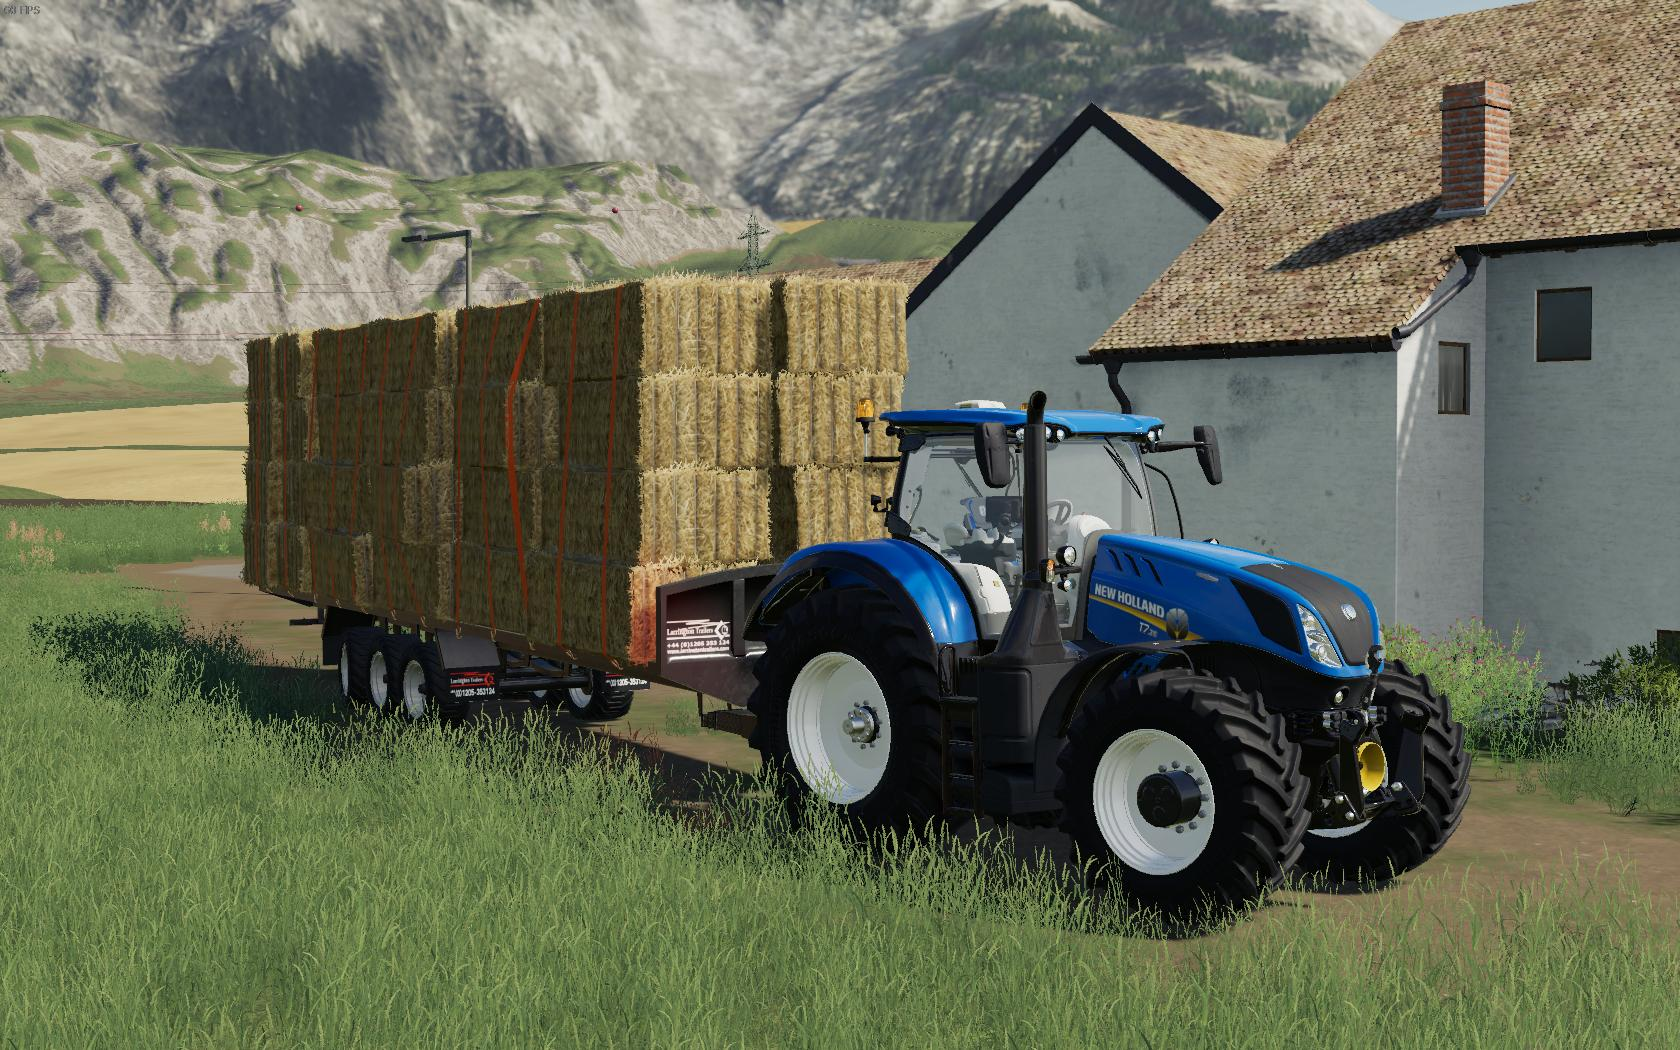 Larrington 42 Foot Bale Trailer v 1.0